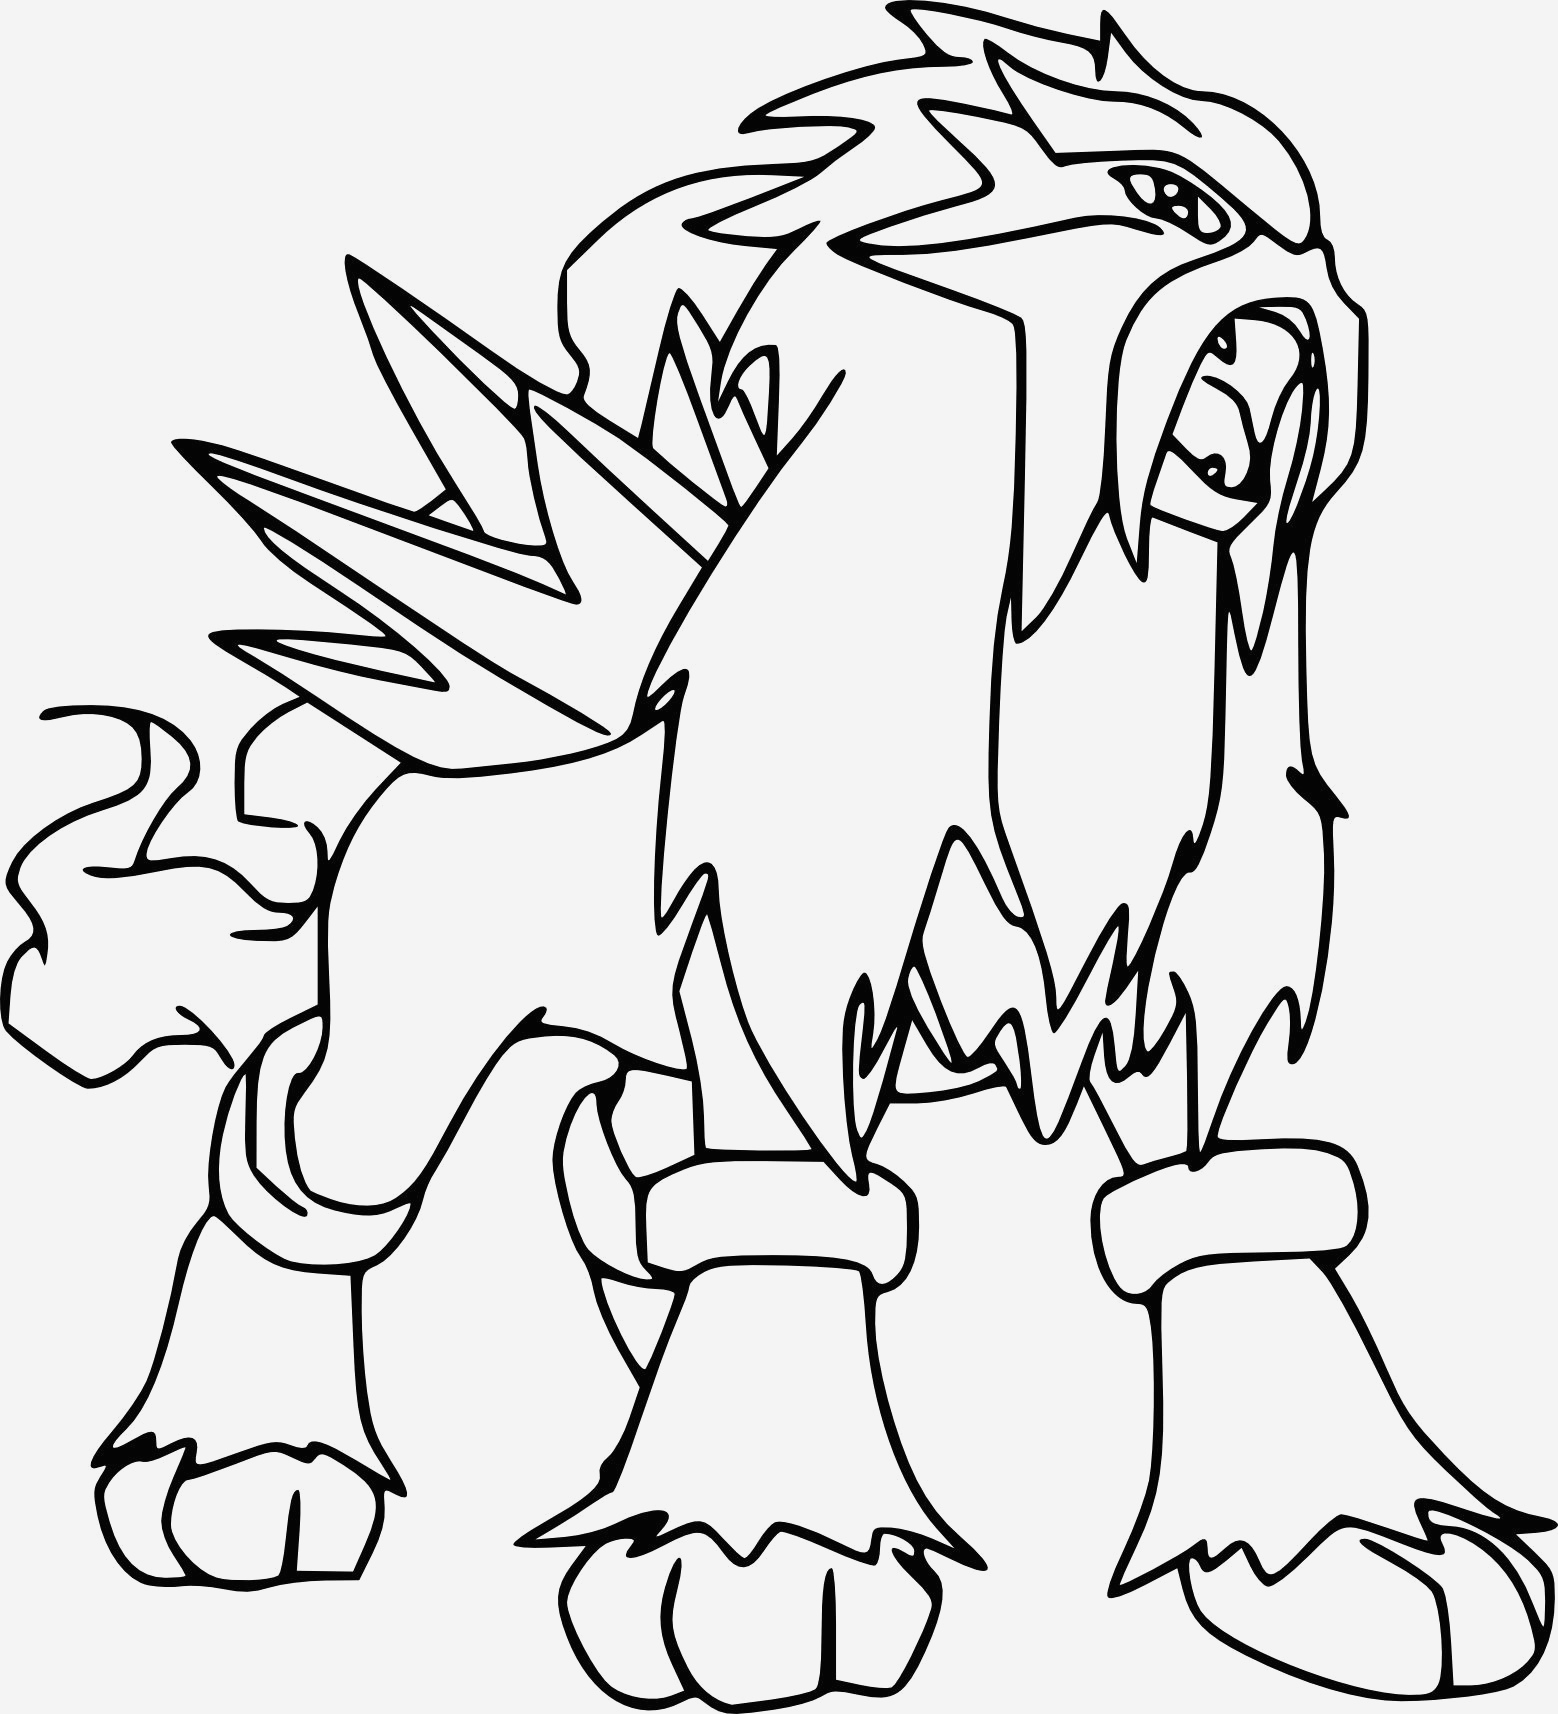 Coloriage Pokemon à Imprimer Lovely 159 Dessins De Coloriage Pokemon   Imprimer Of Coloriage Pokemon à Imprimer